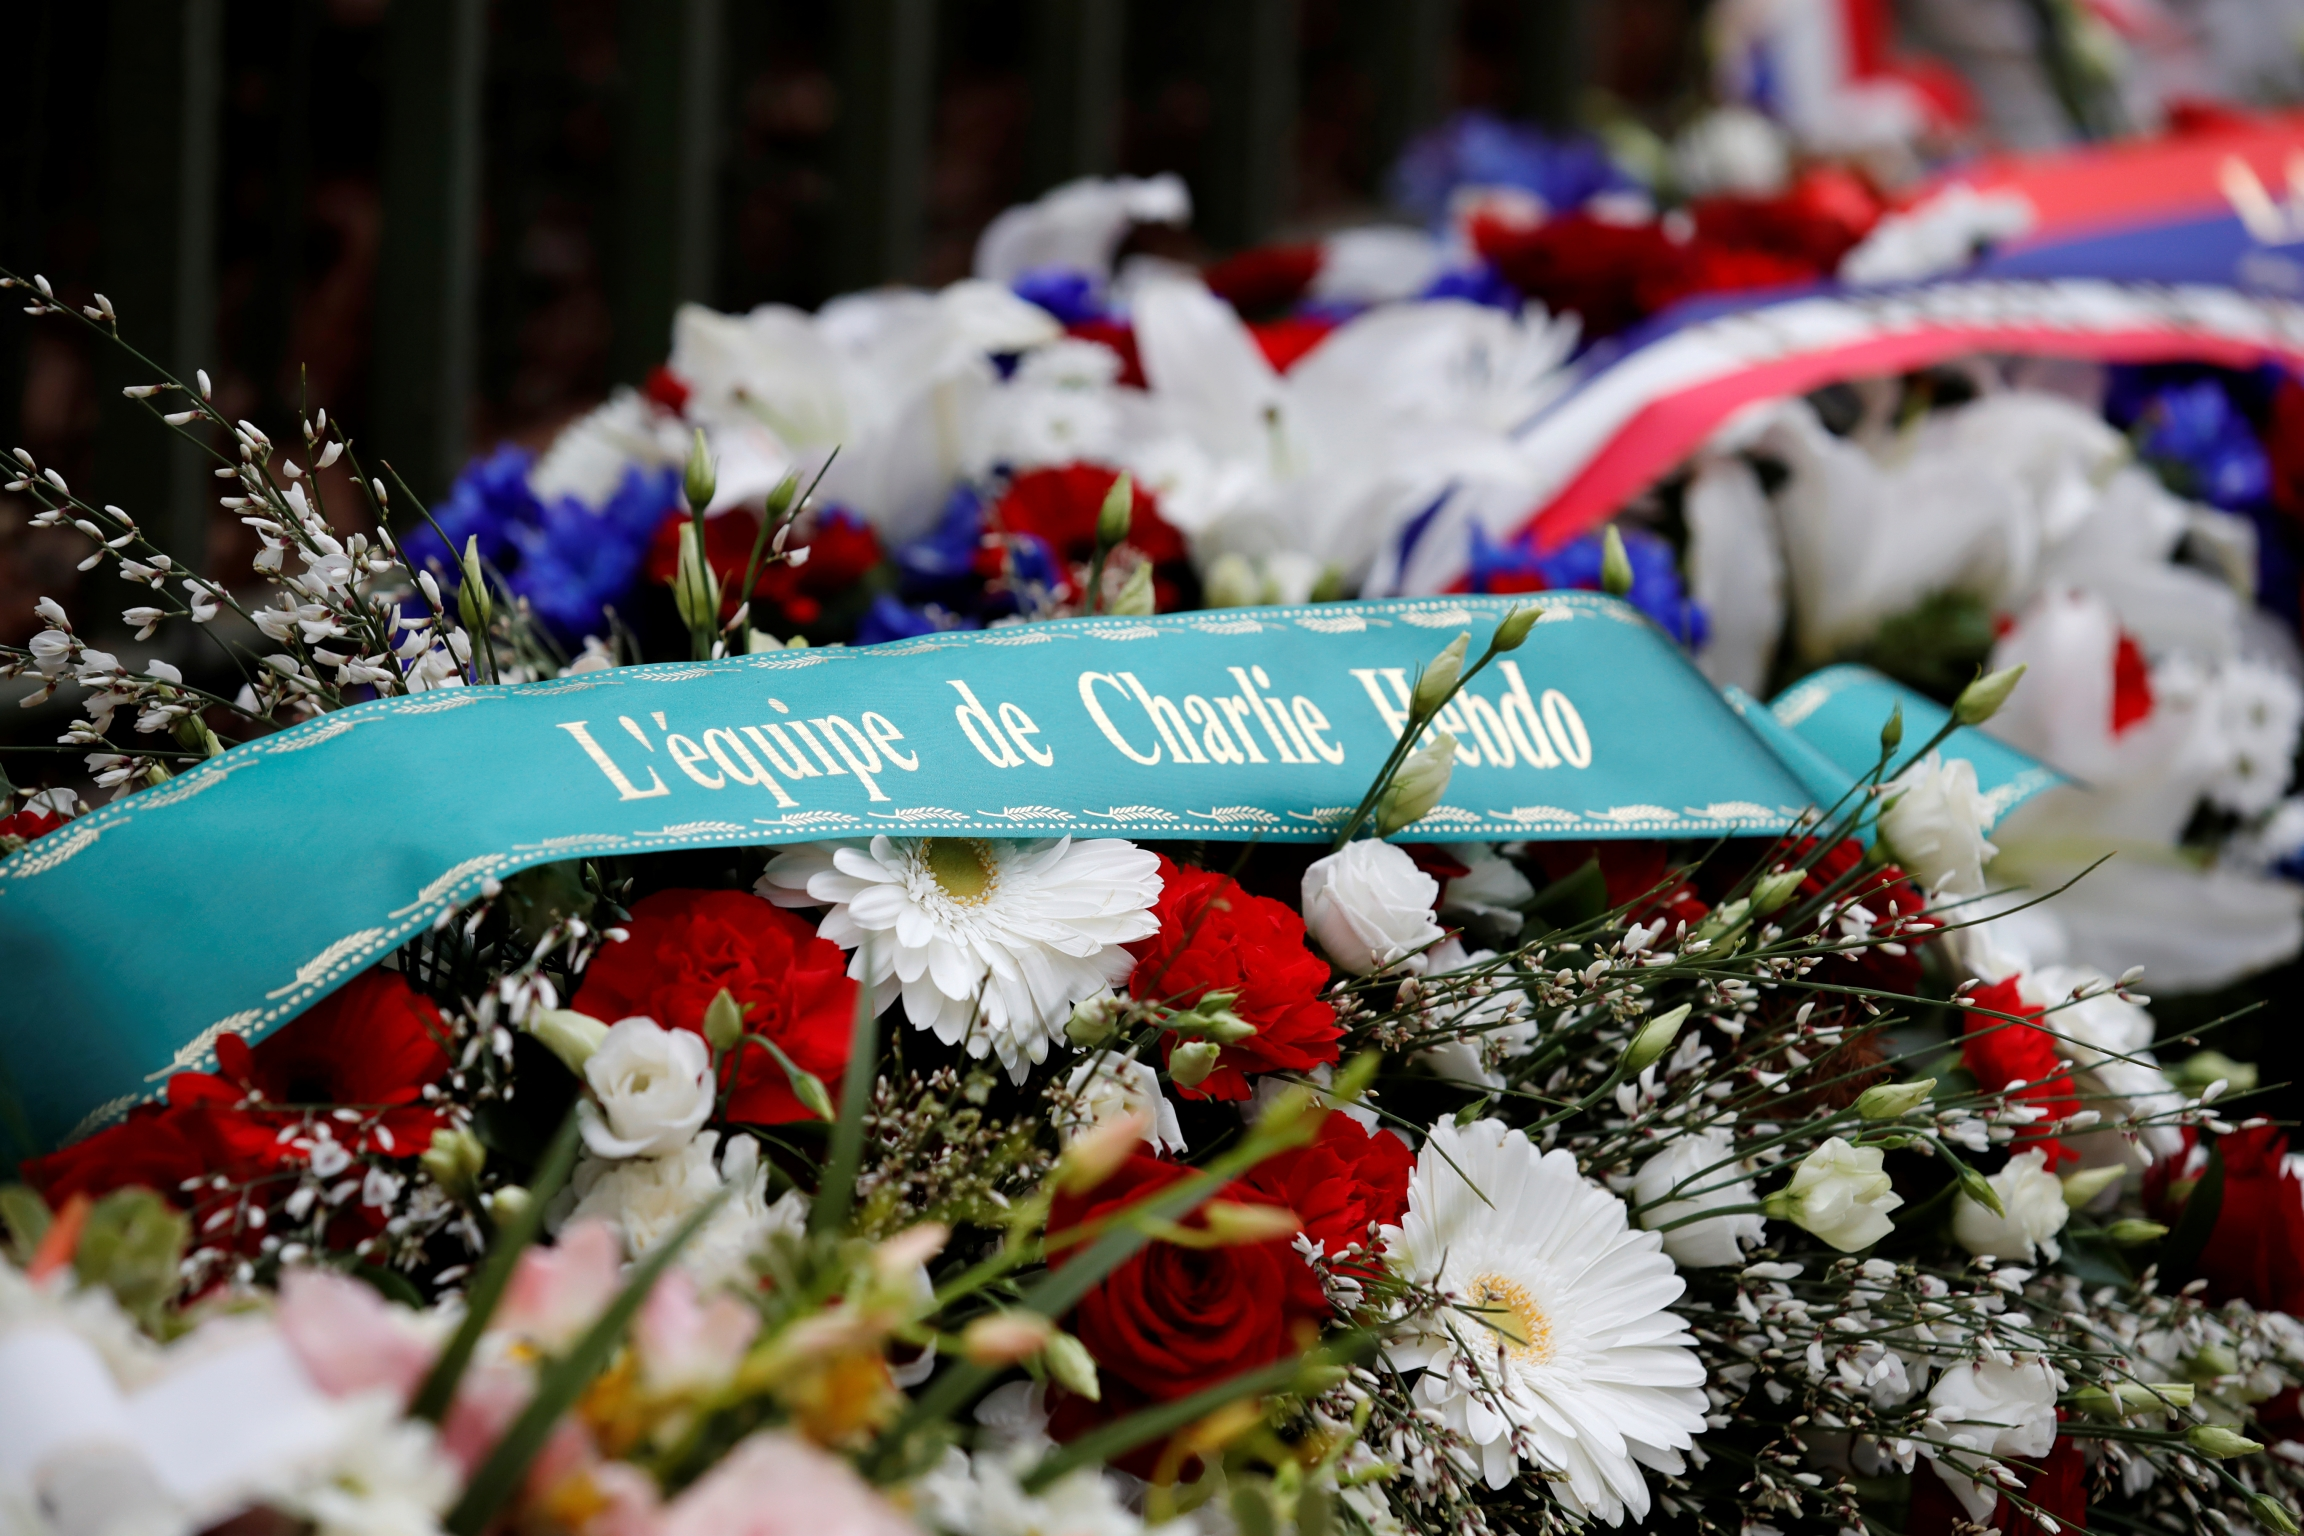 Bouquet of flowers memorializing Charlie Hebdo